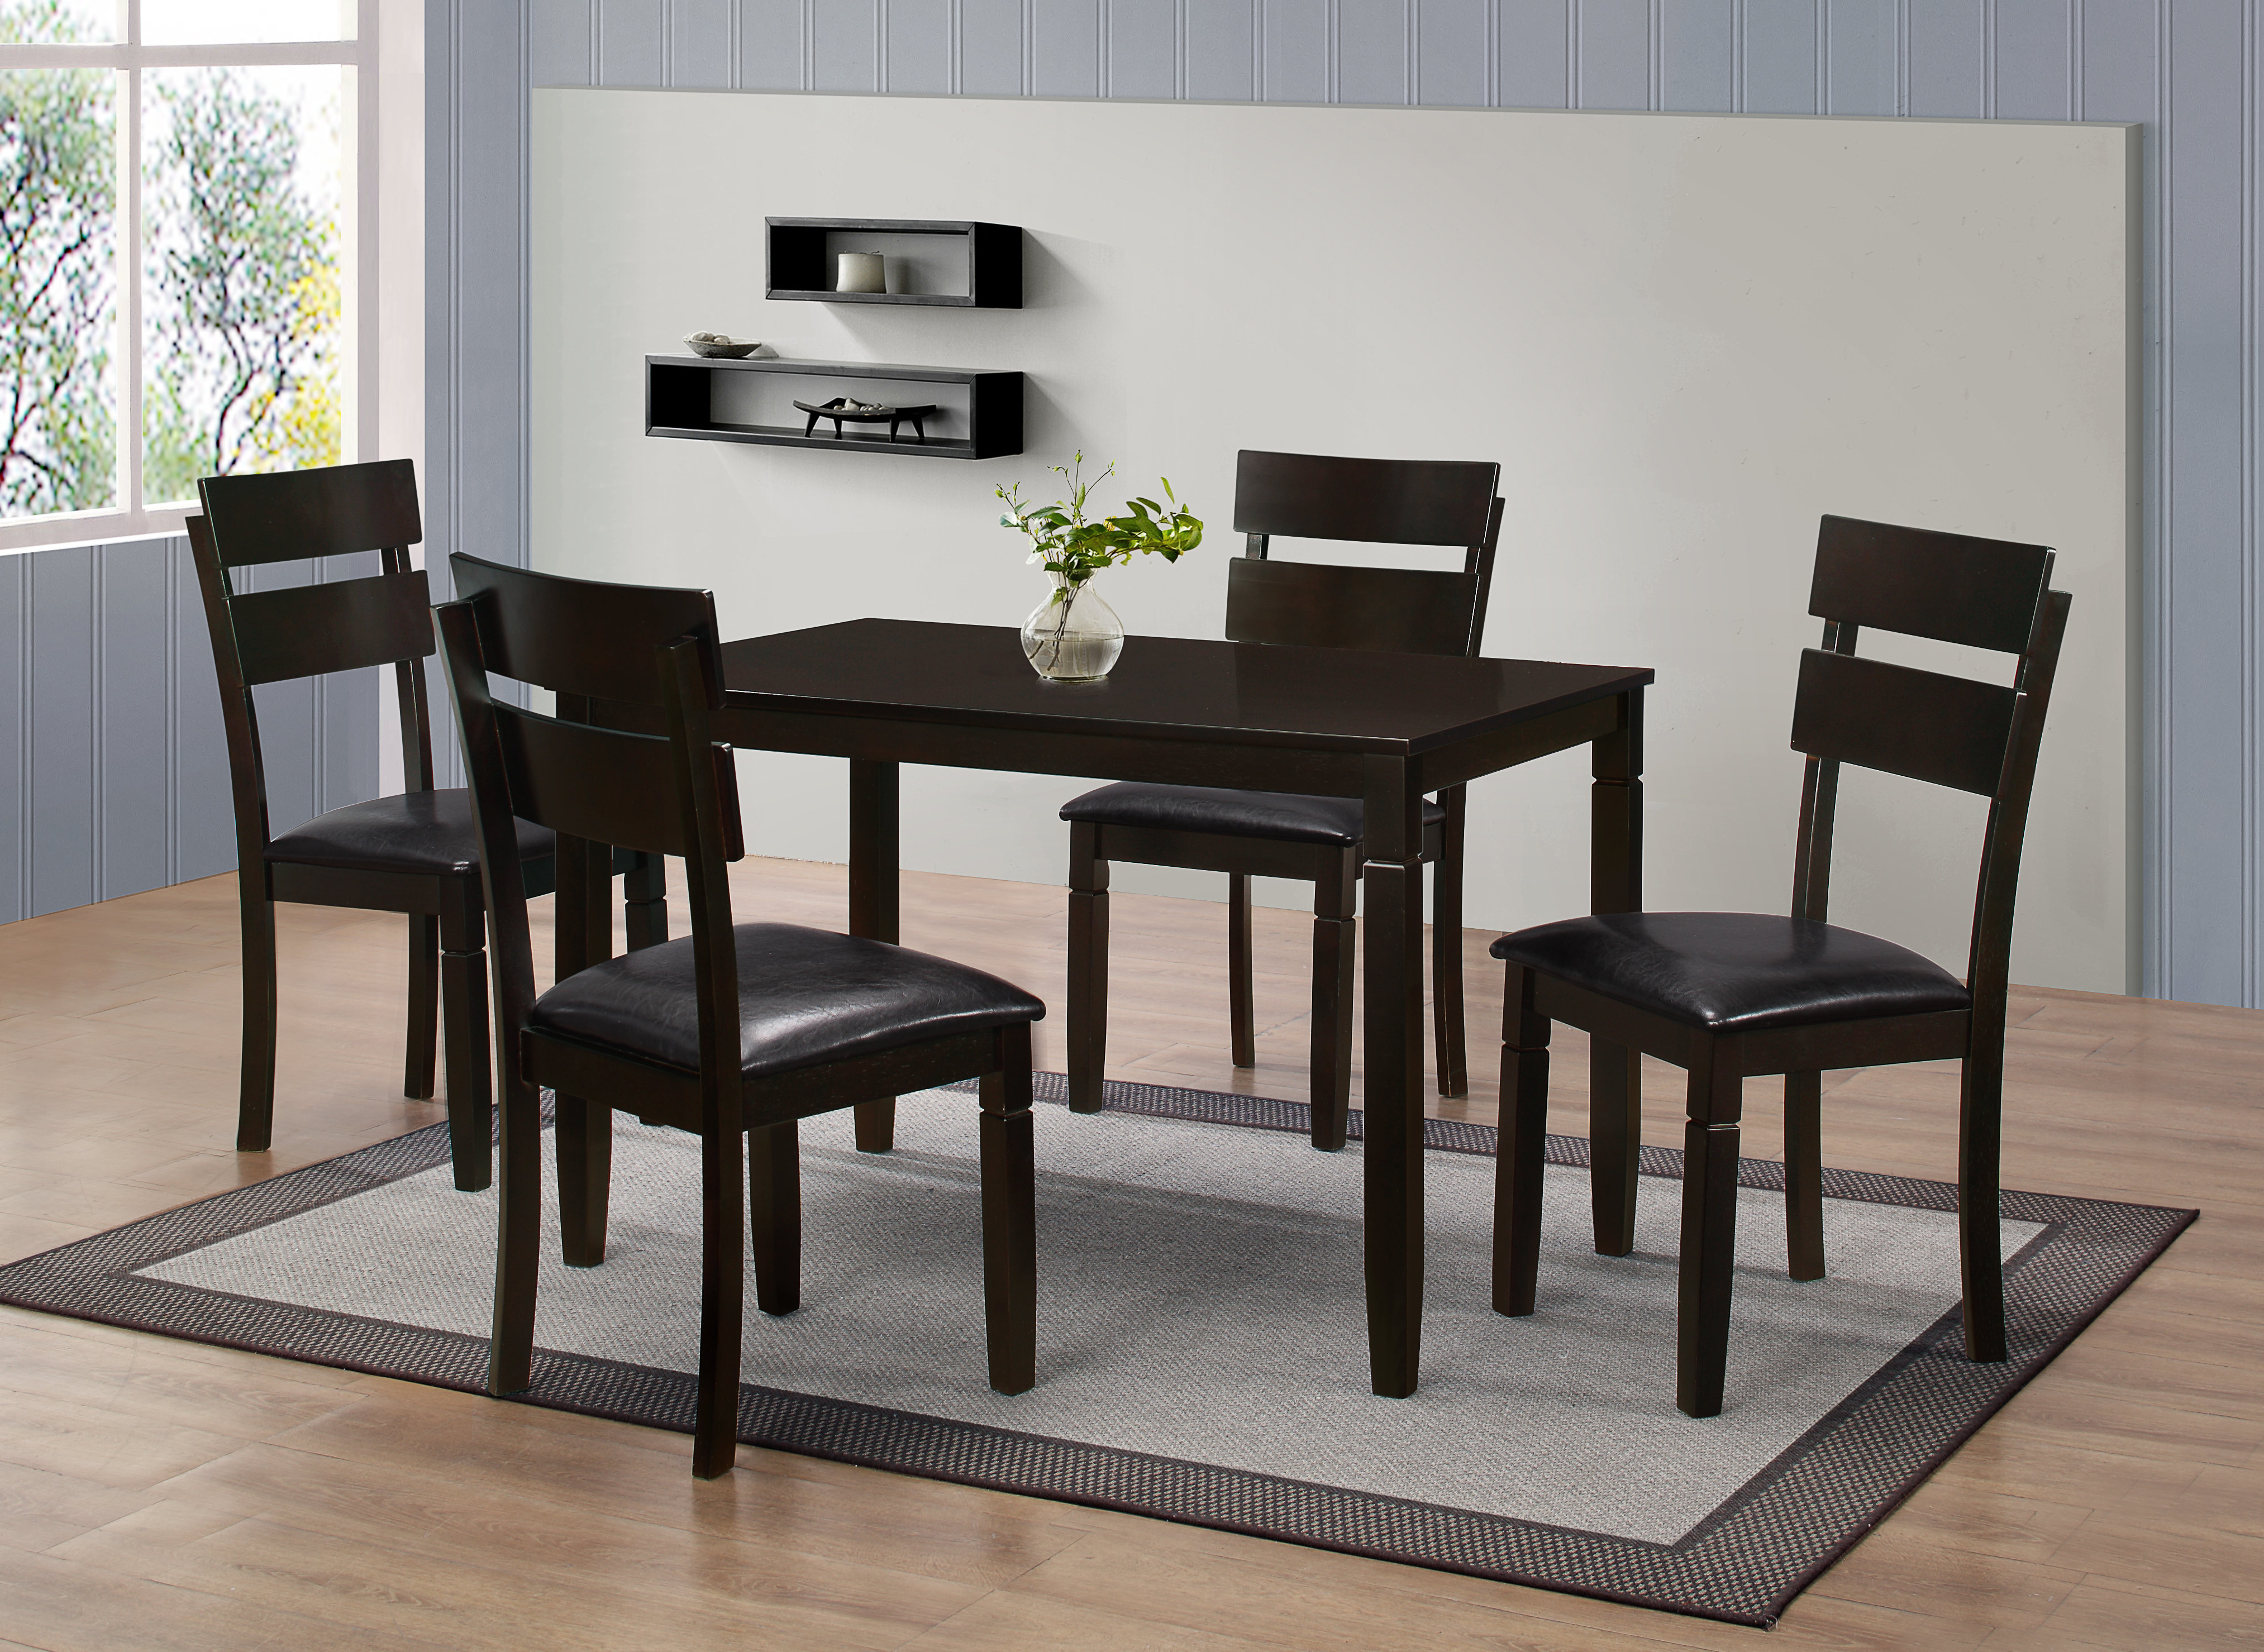 Winnetka 5 Piece Dining Set With Regard To Recent Autberry 5 Piece Dining Sets (View 20 of 20)